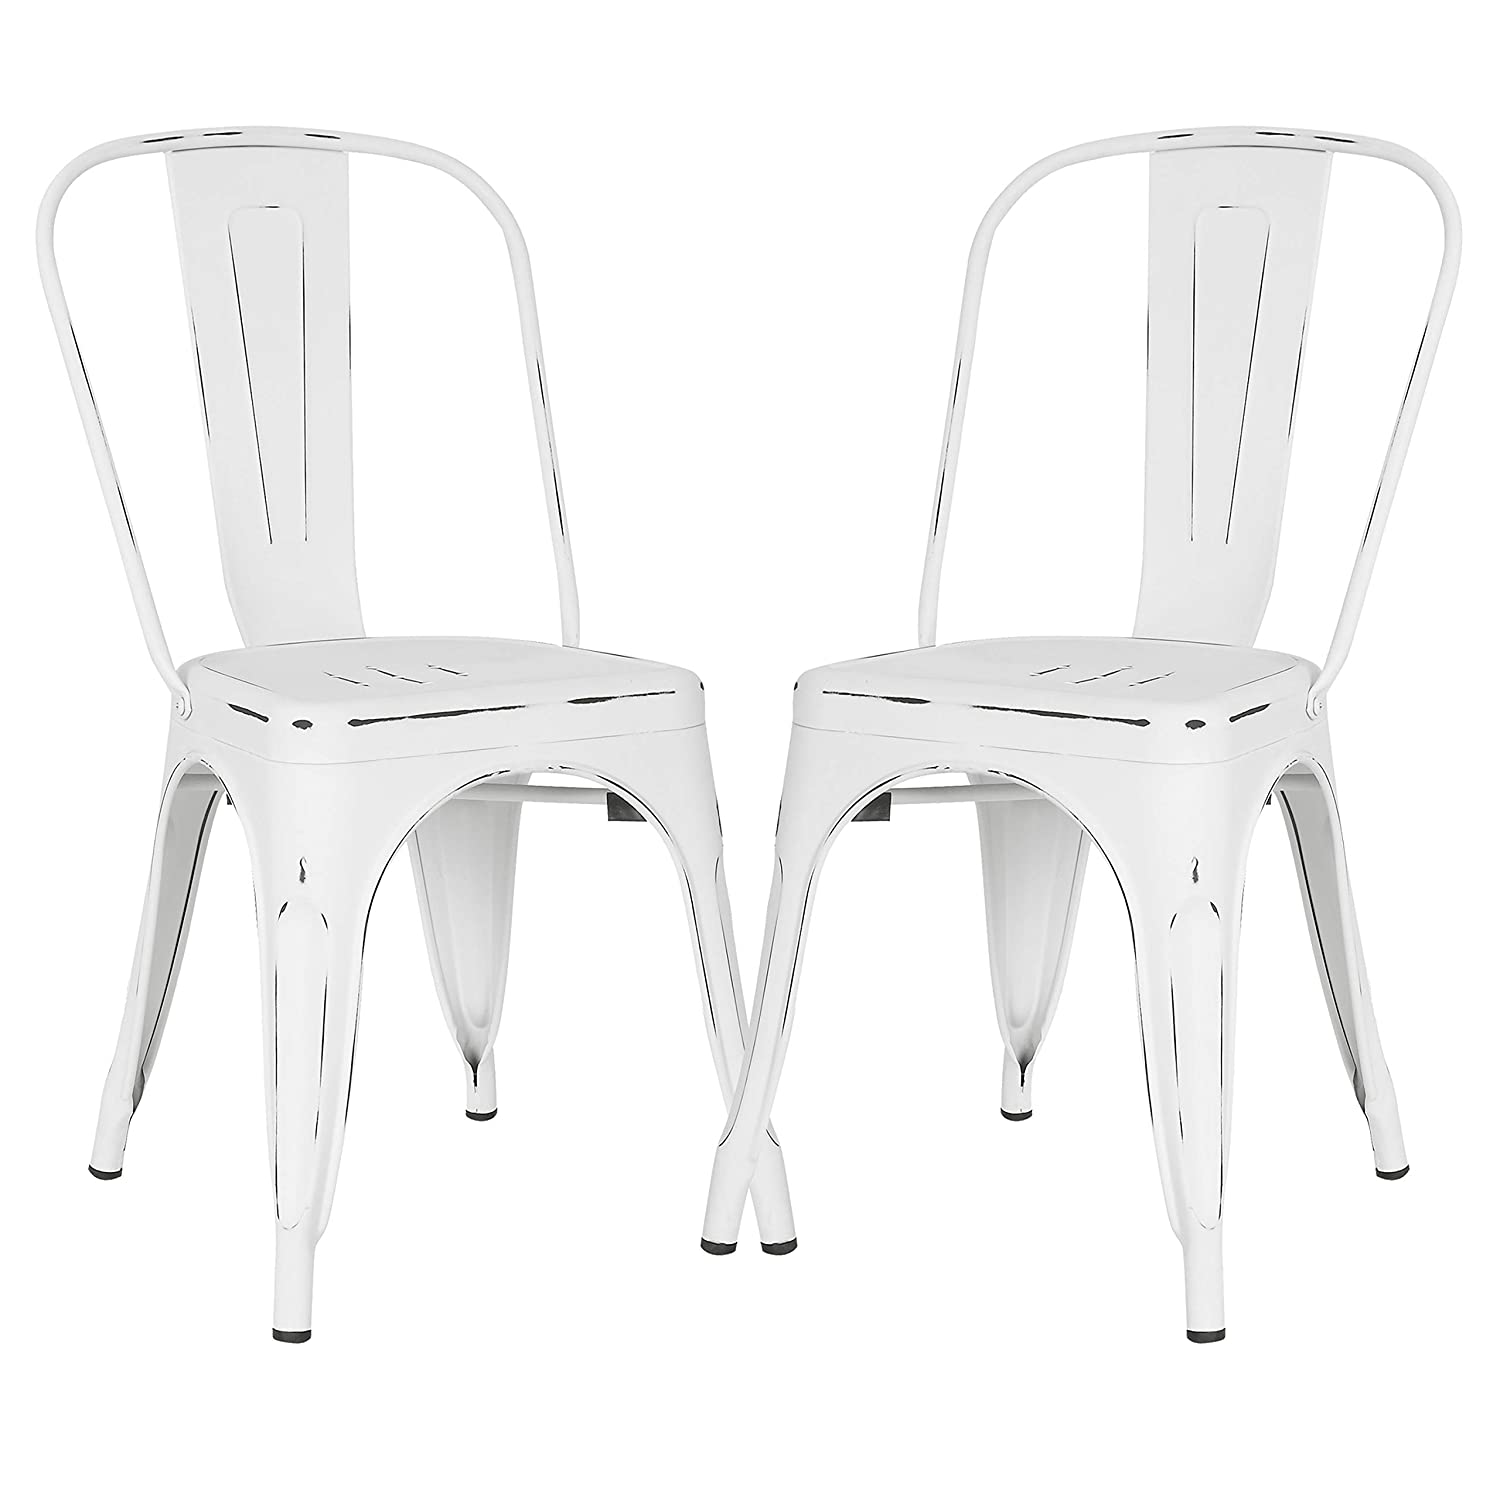 Groovy Poly And Bark Trattoria Kitchen And Dining Metal Side Chair In Distressed White Set Of 2 Uwap Interior Chair Design Uwaporg